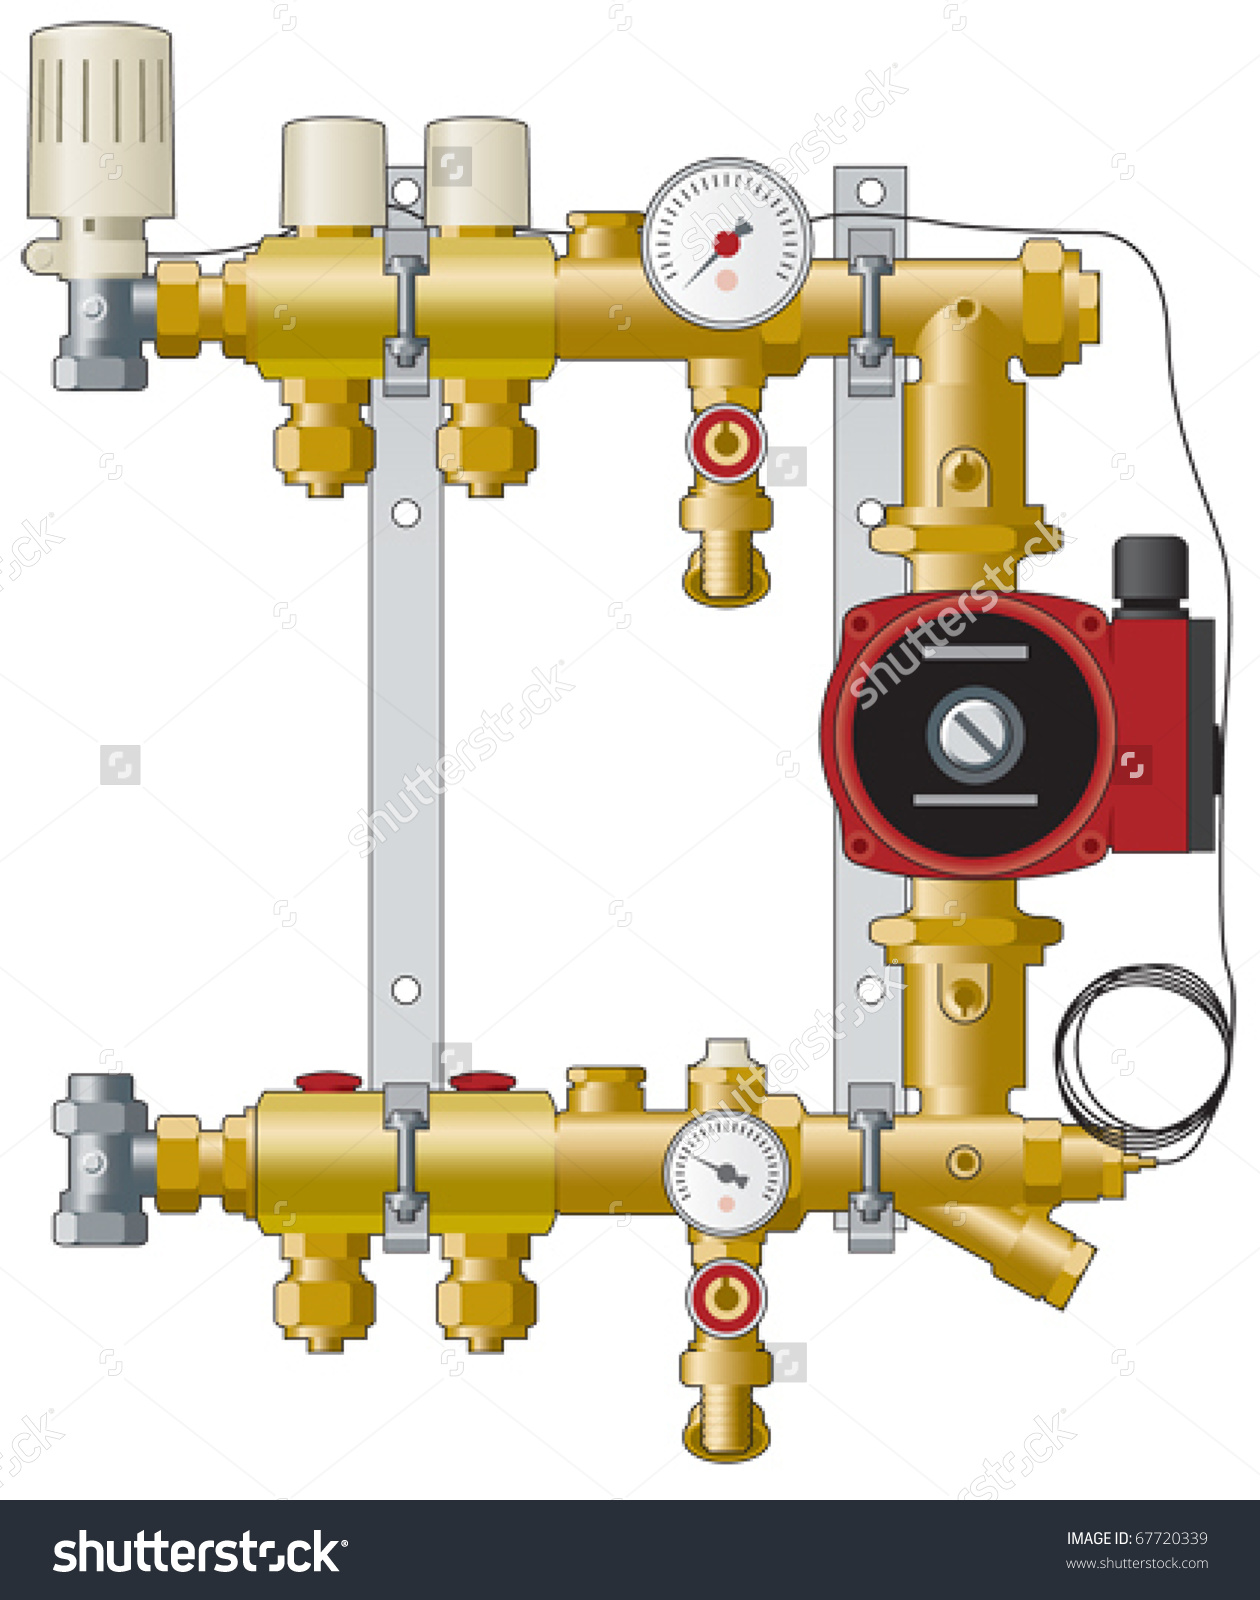 Central Heating Manifold Pipework And Pump Stock Vector 67720339.